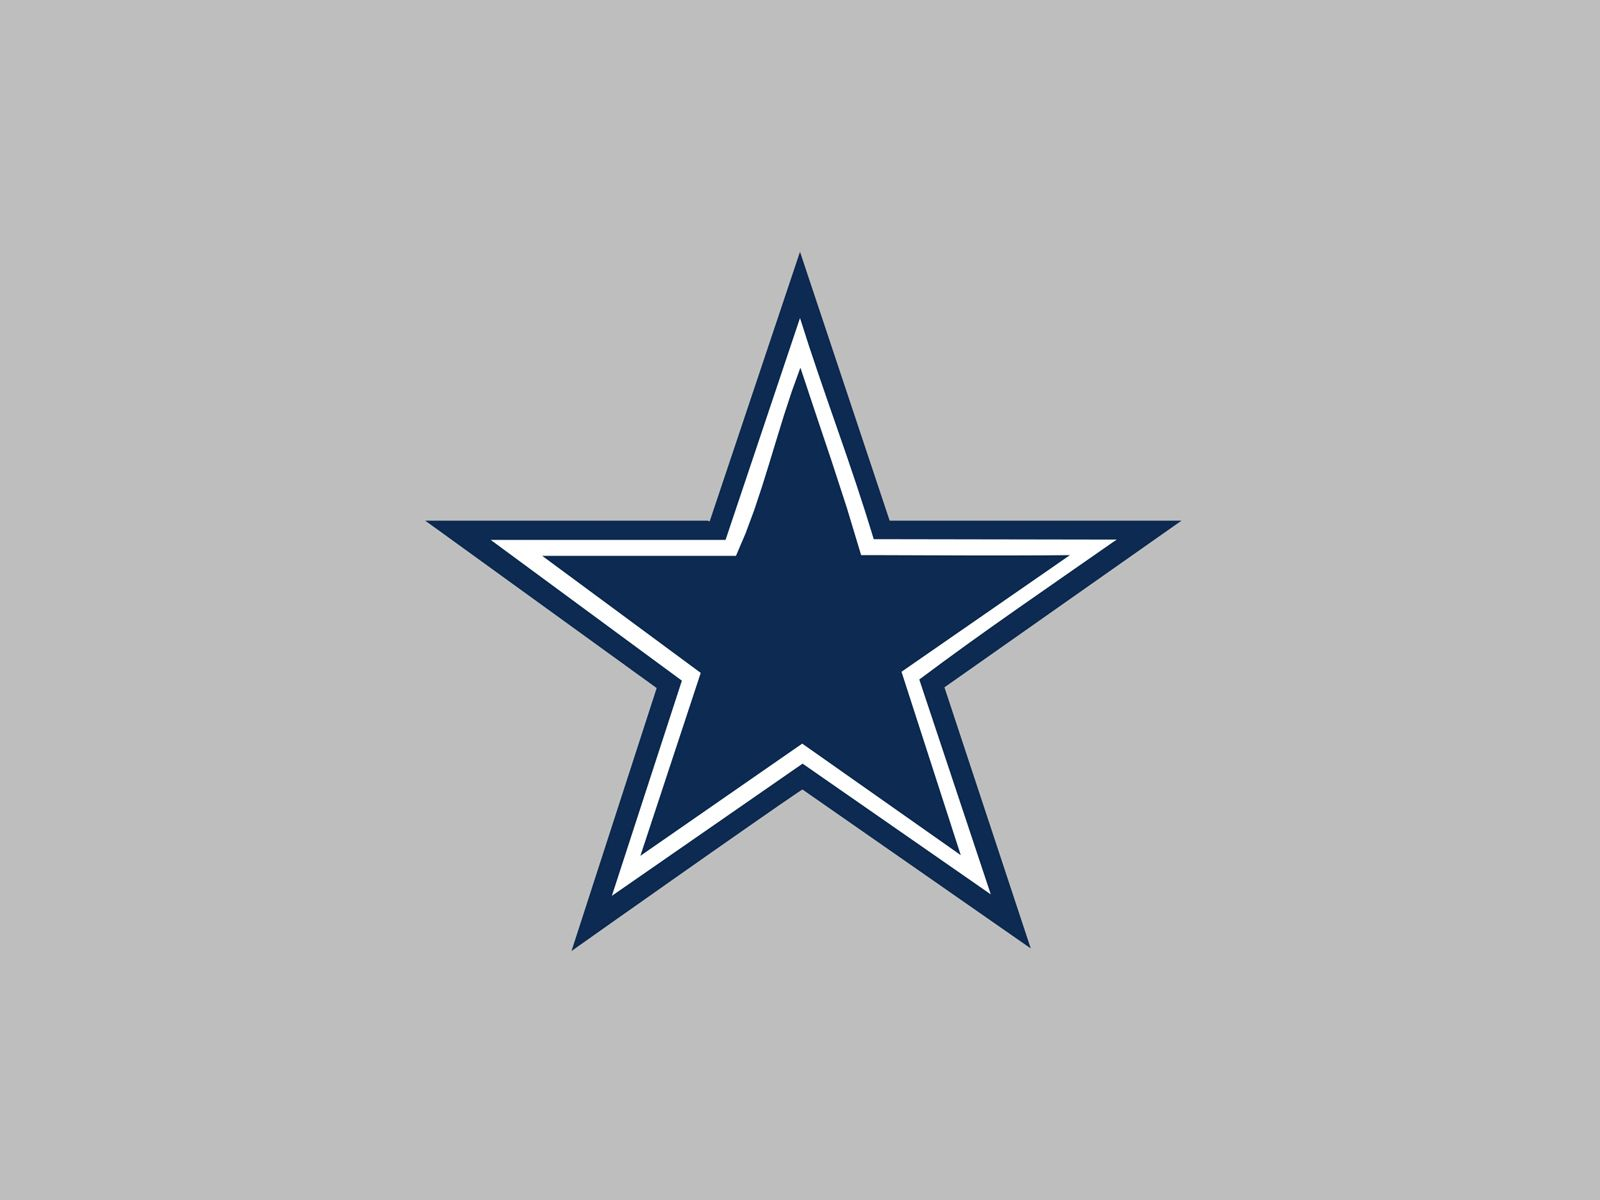 cowboys wallpaper (plain) Cowboys, Under armor